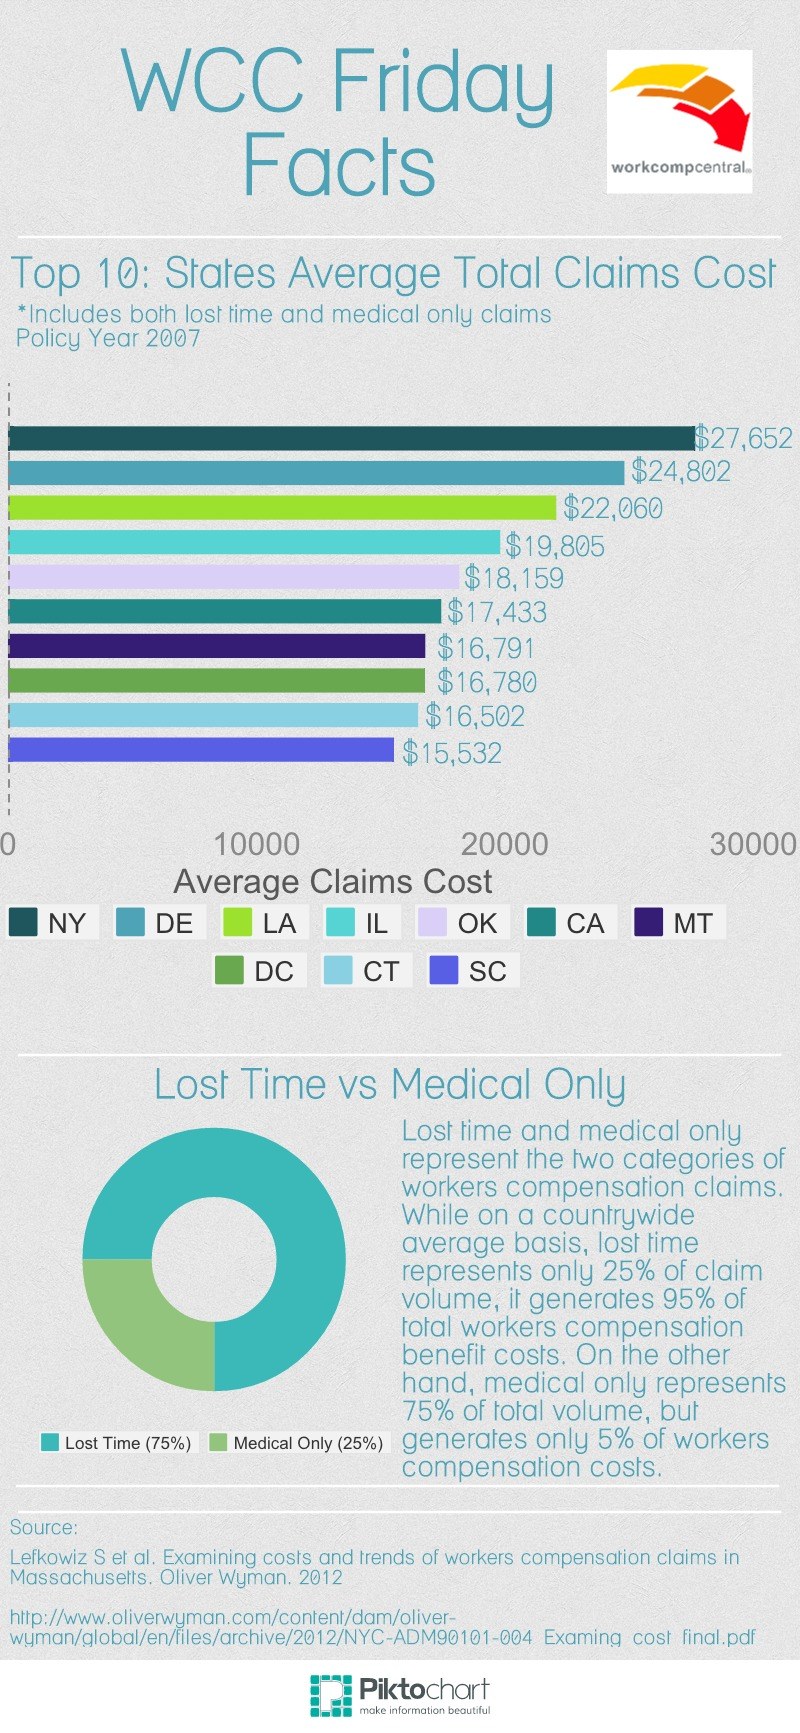 Average Total Claims Costs